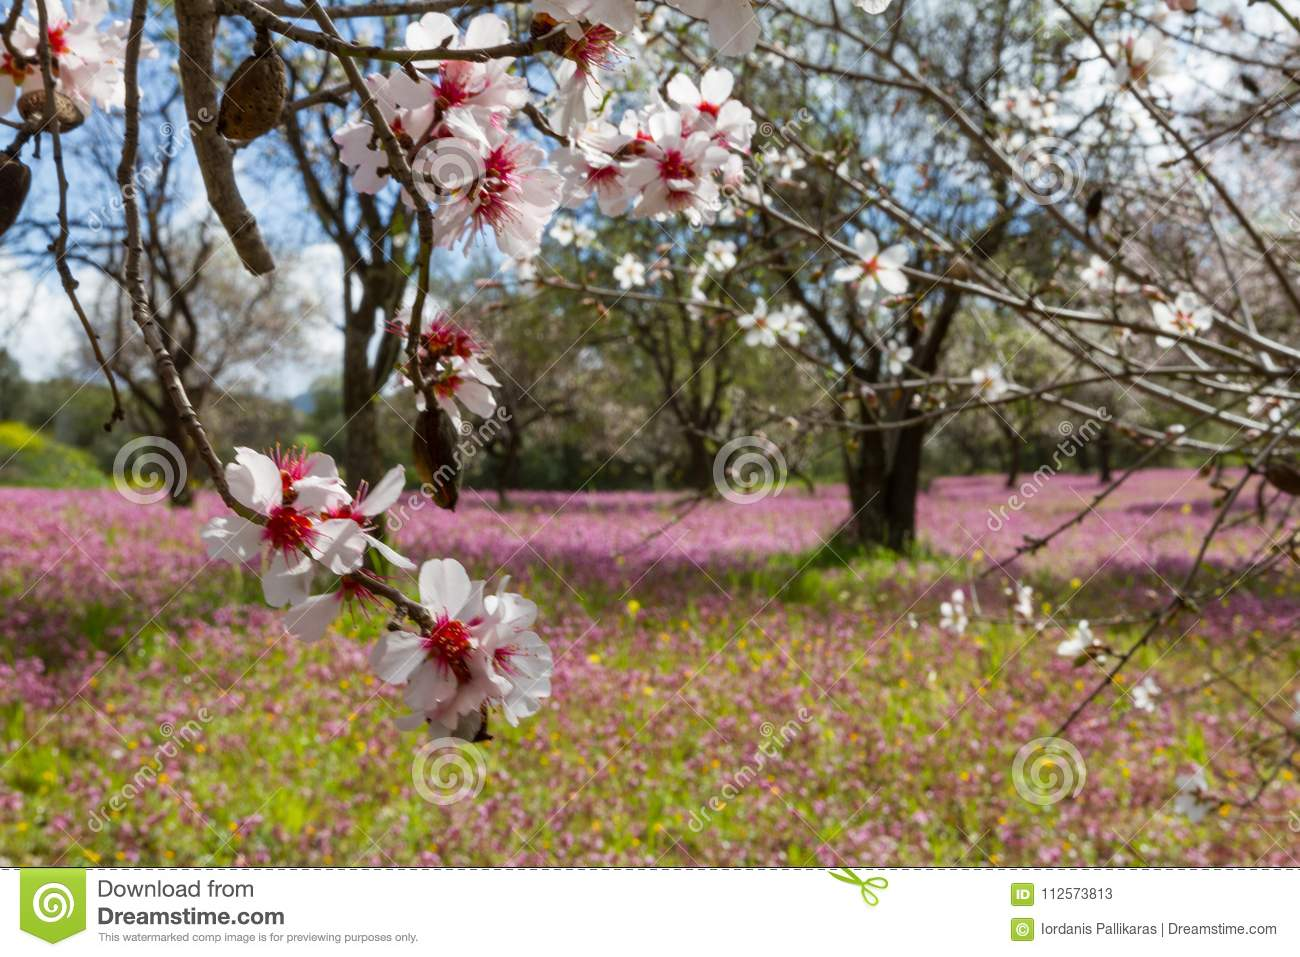 Blossoming Almond Trees In A Field With Purple Flowers In Spring